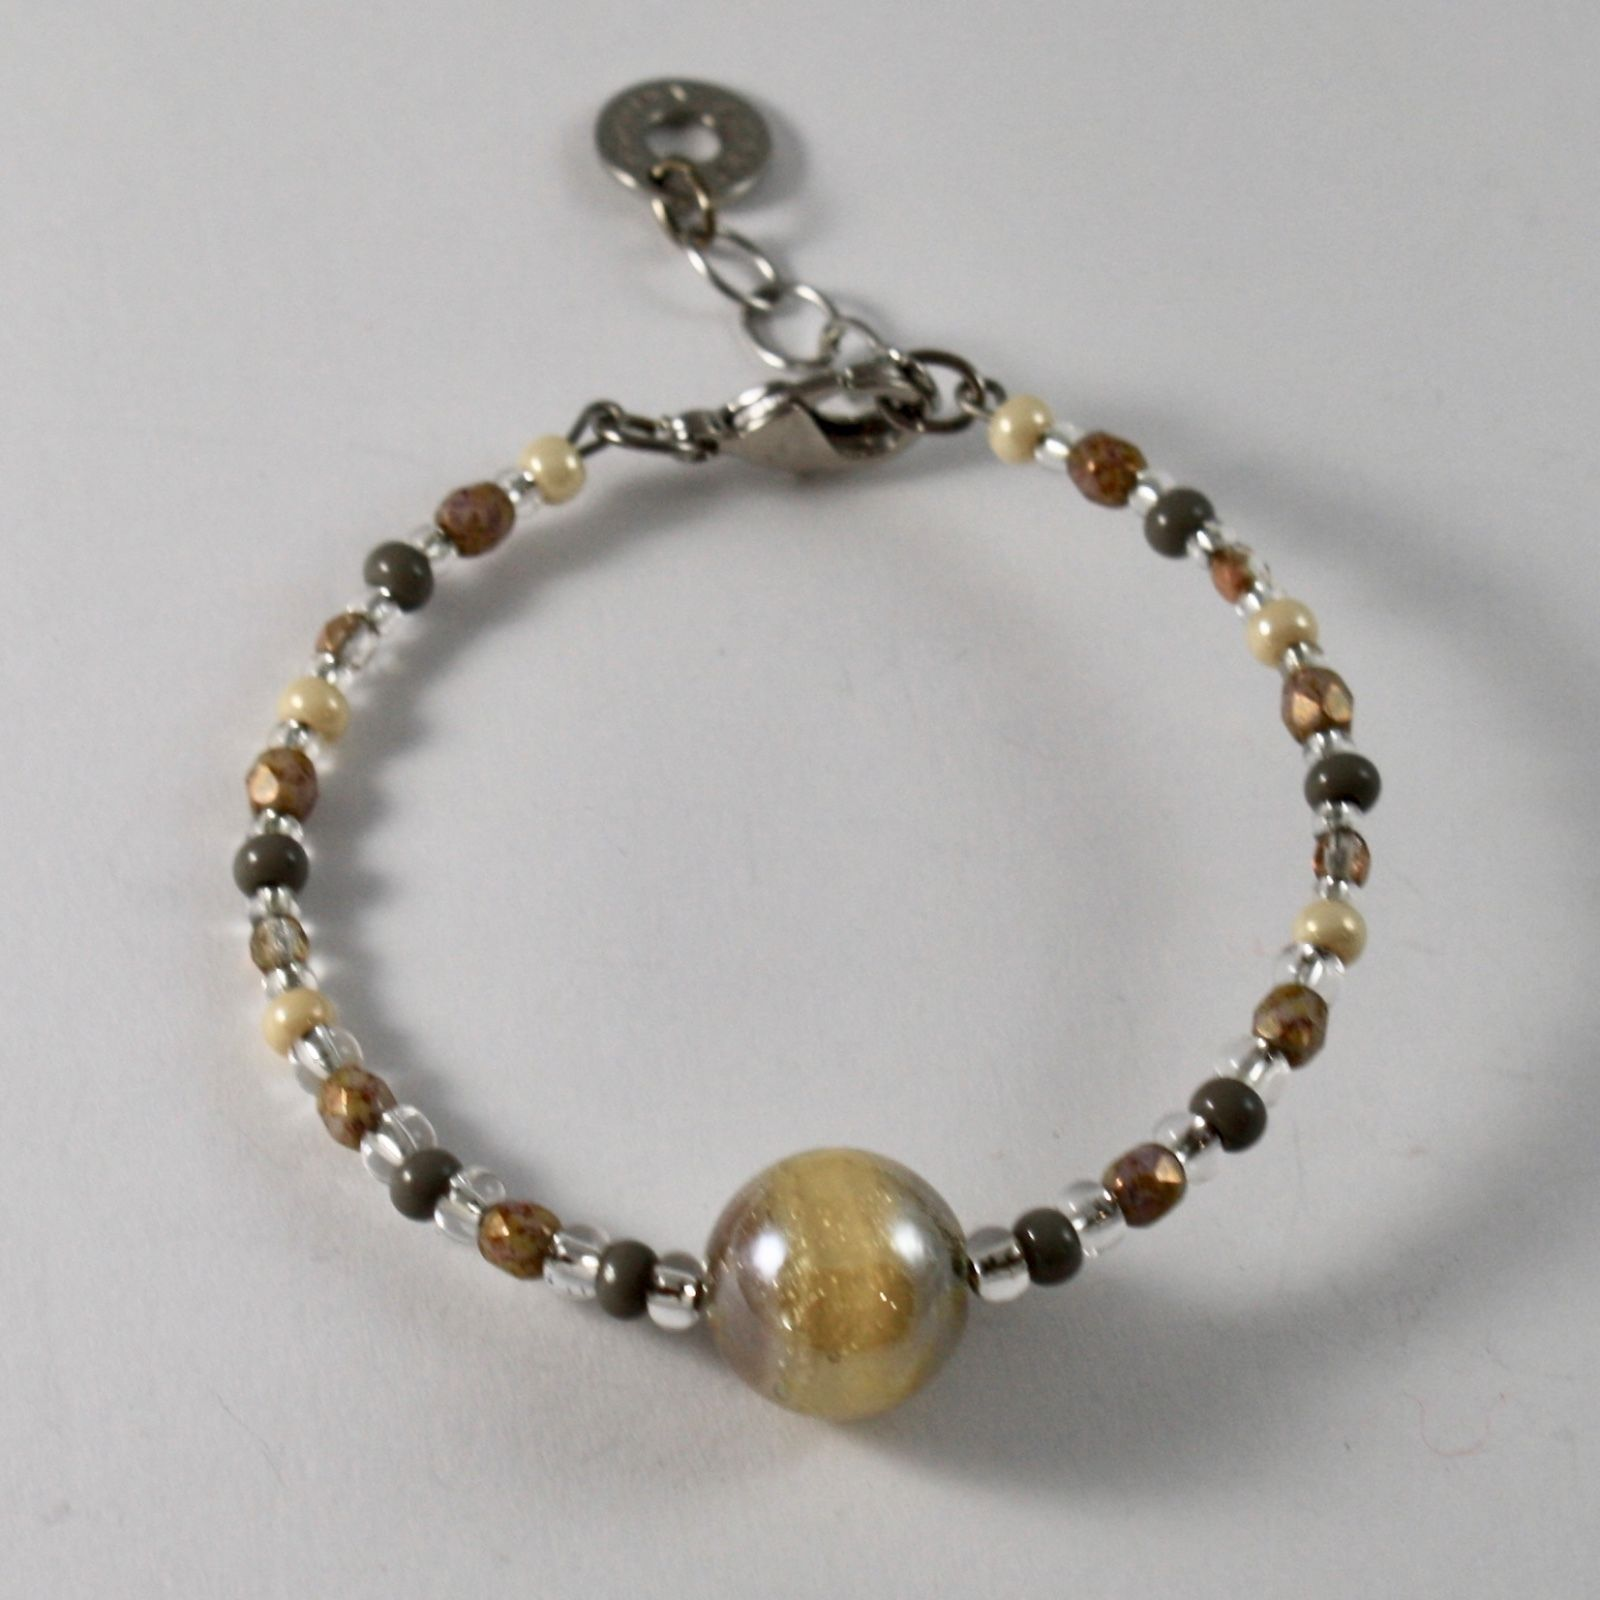 BRACELET ANTICA MURRINA VENEZIA MURANO GLASS SPHERES YELLOW BROWN, 19 CM